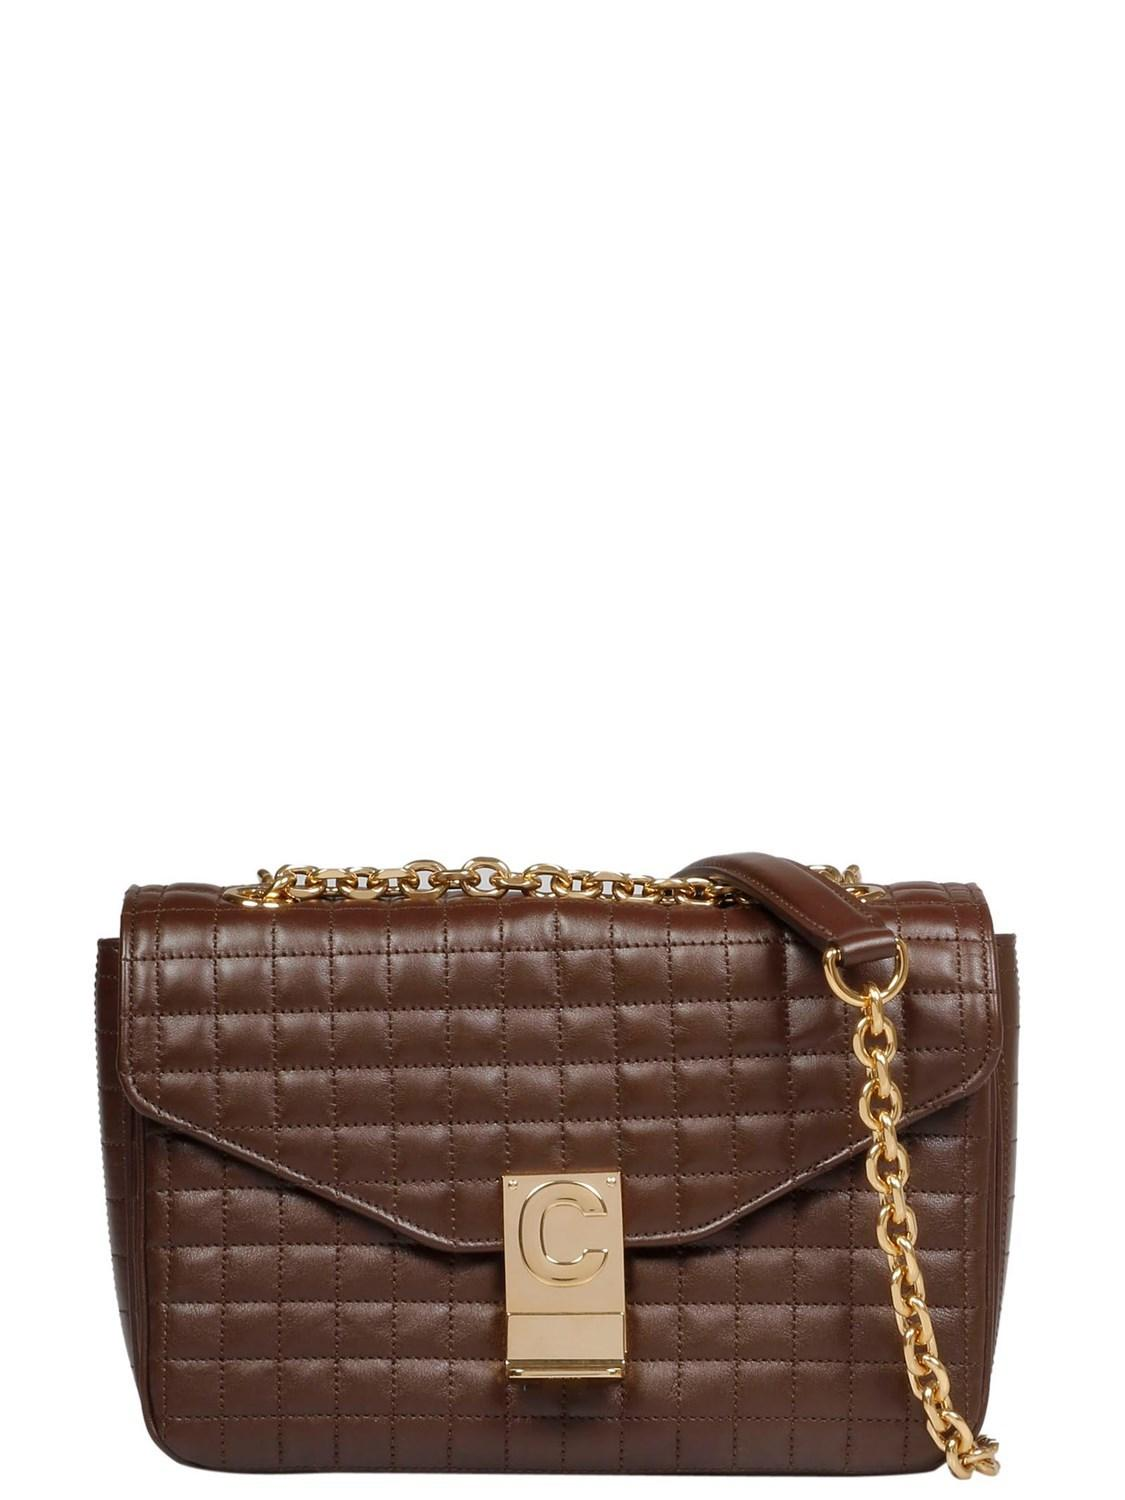 Lyst - Céline Céline Women s 187253bfc19br Brown Leather Shoulder ... 7b28800fb5239